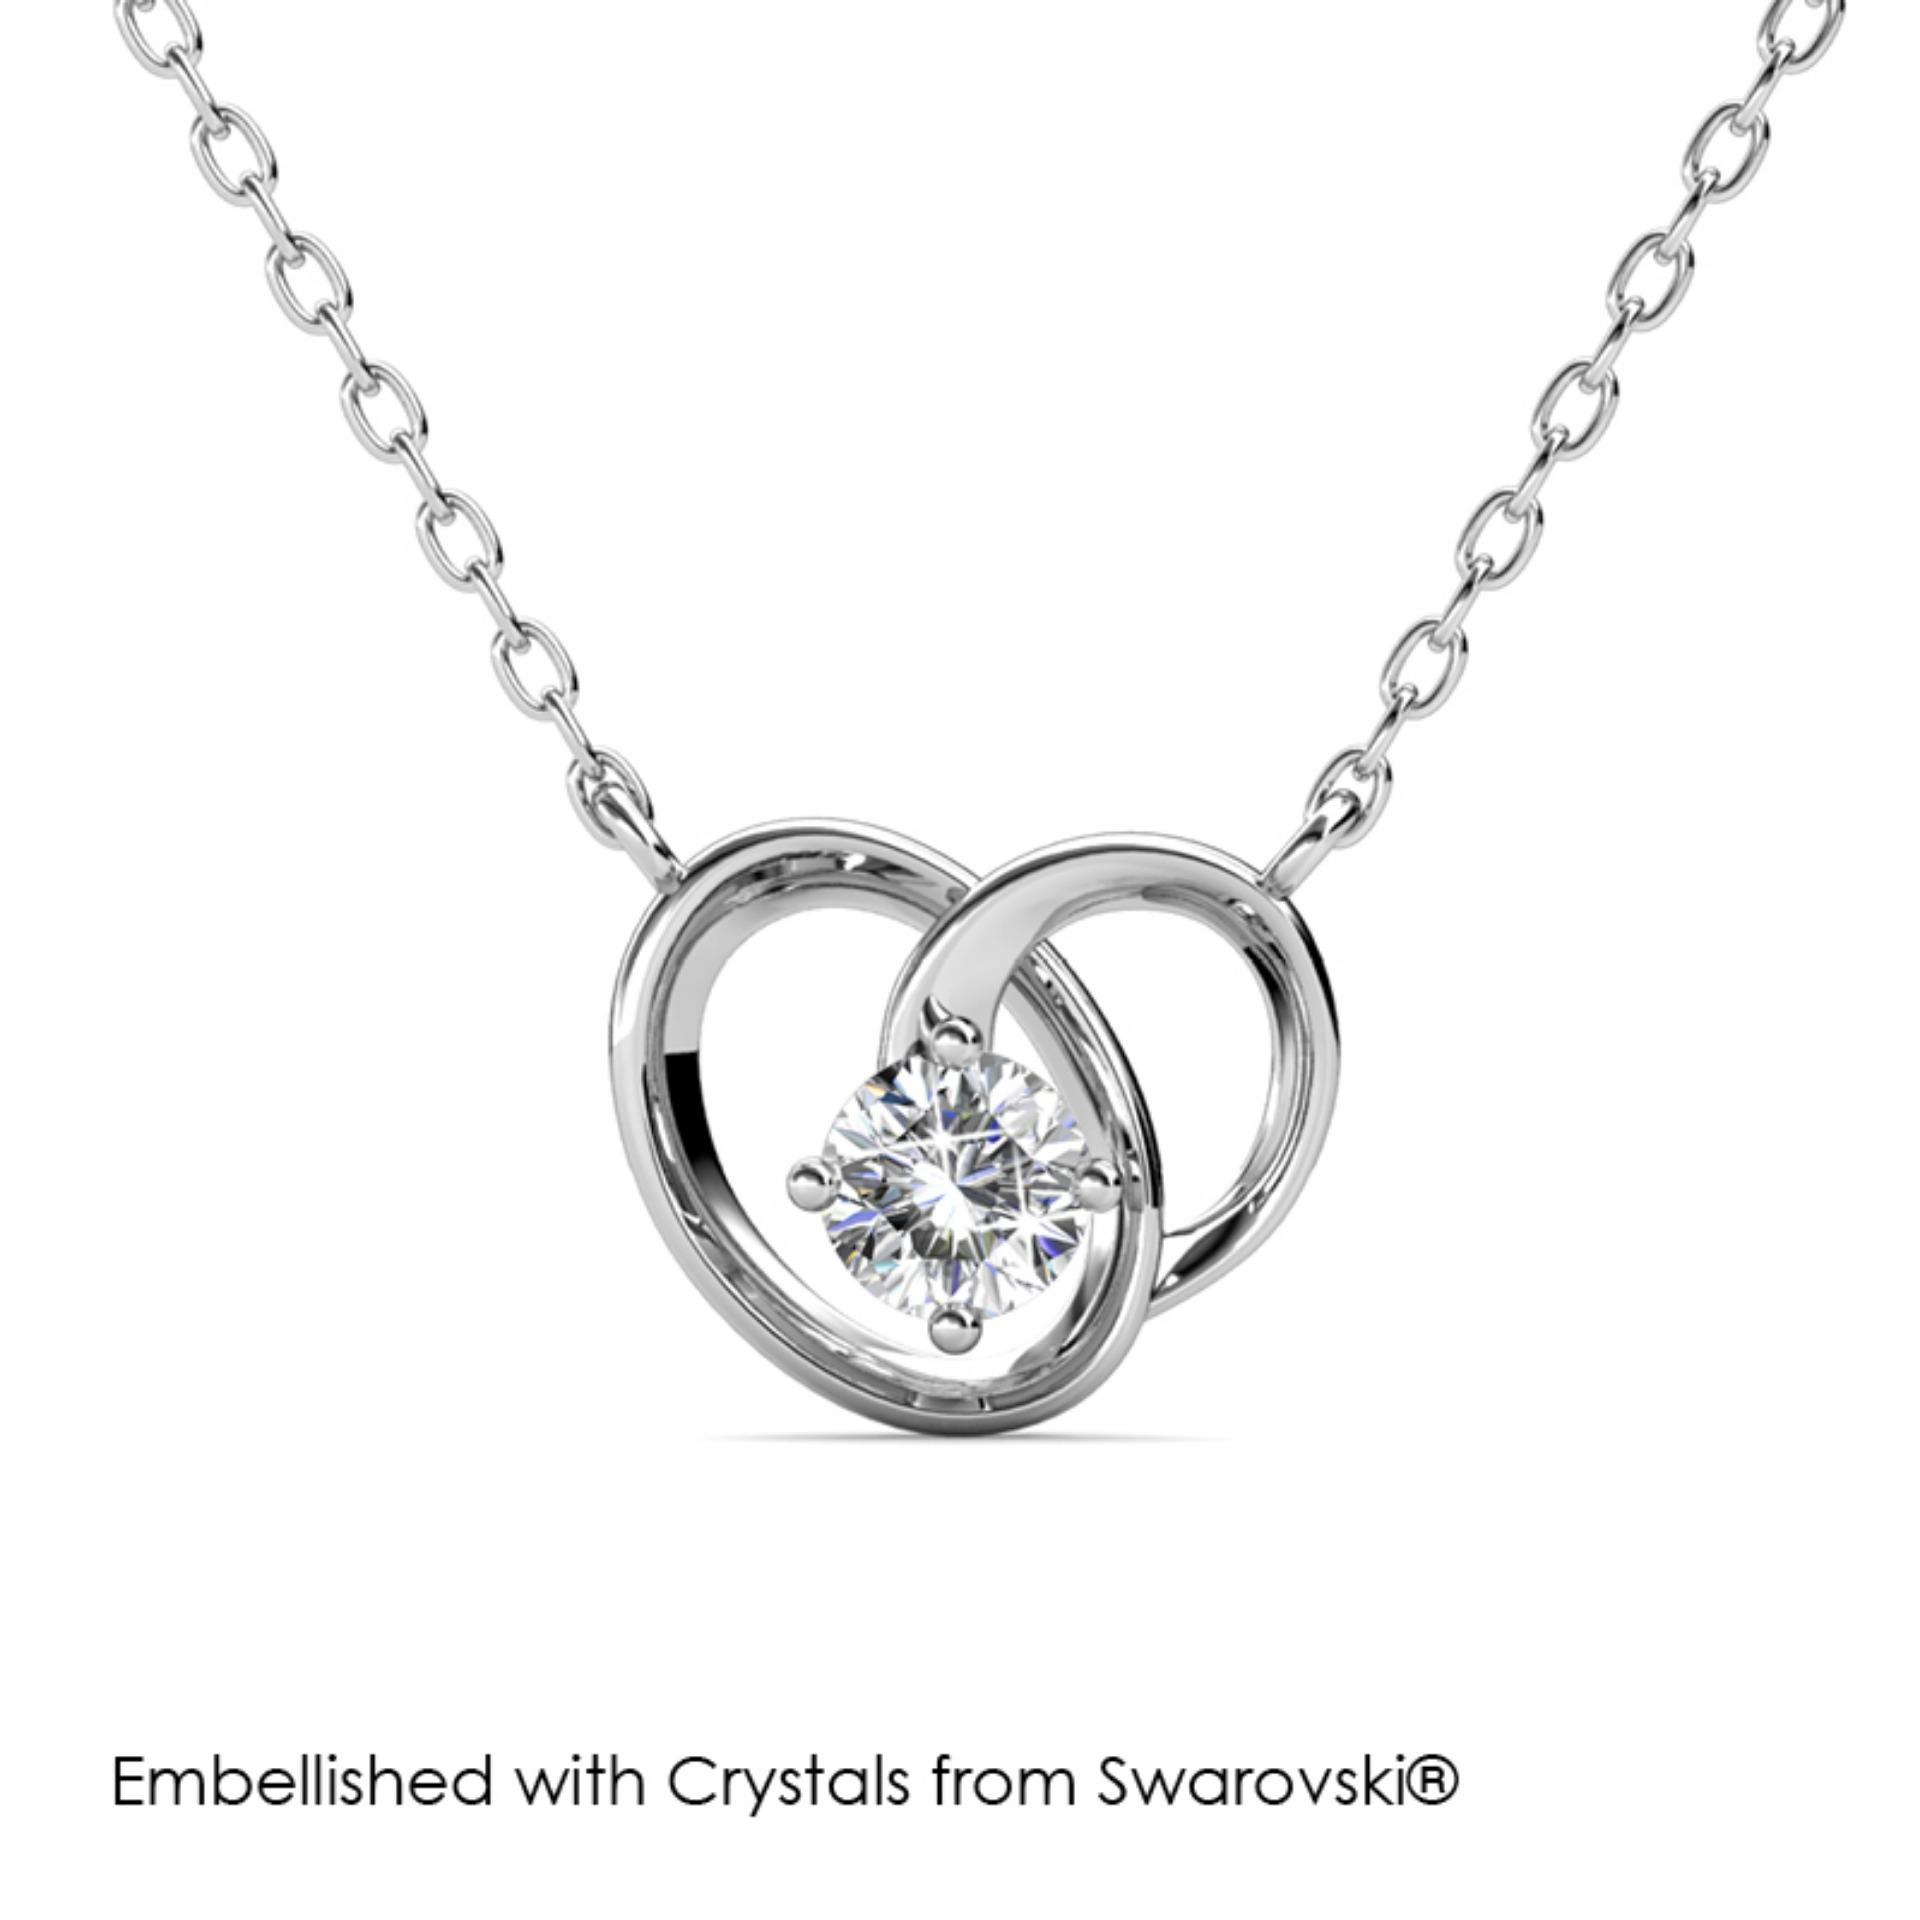 Harmony Pendant - Embellished With Crystals From Swarovski®.